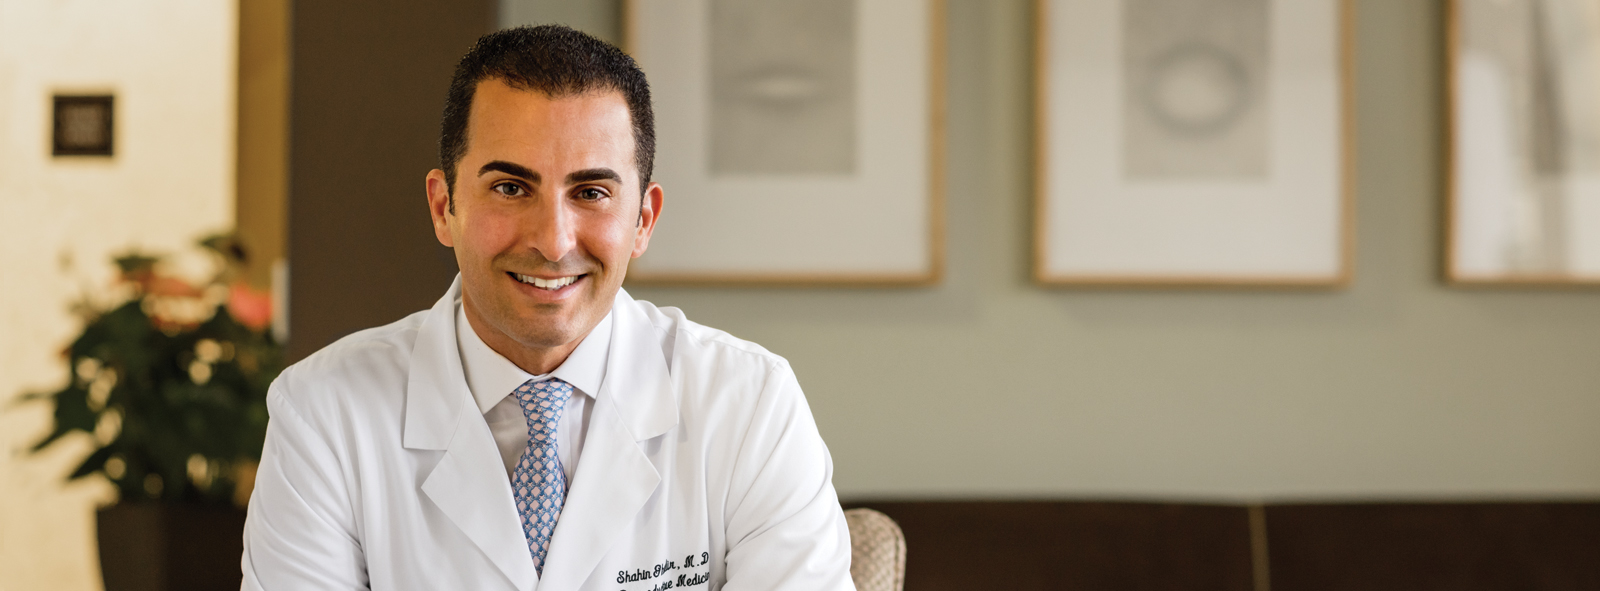 Select to access video of First Republic Medical client(s) Shahin Ghadir, M.D.